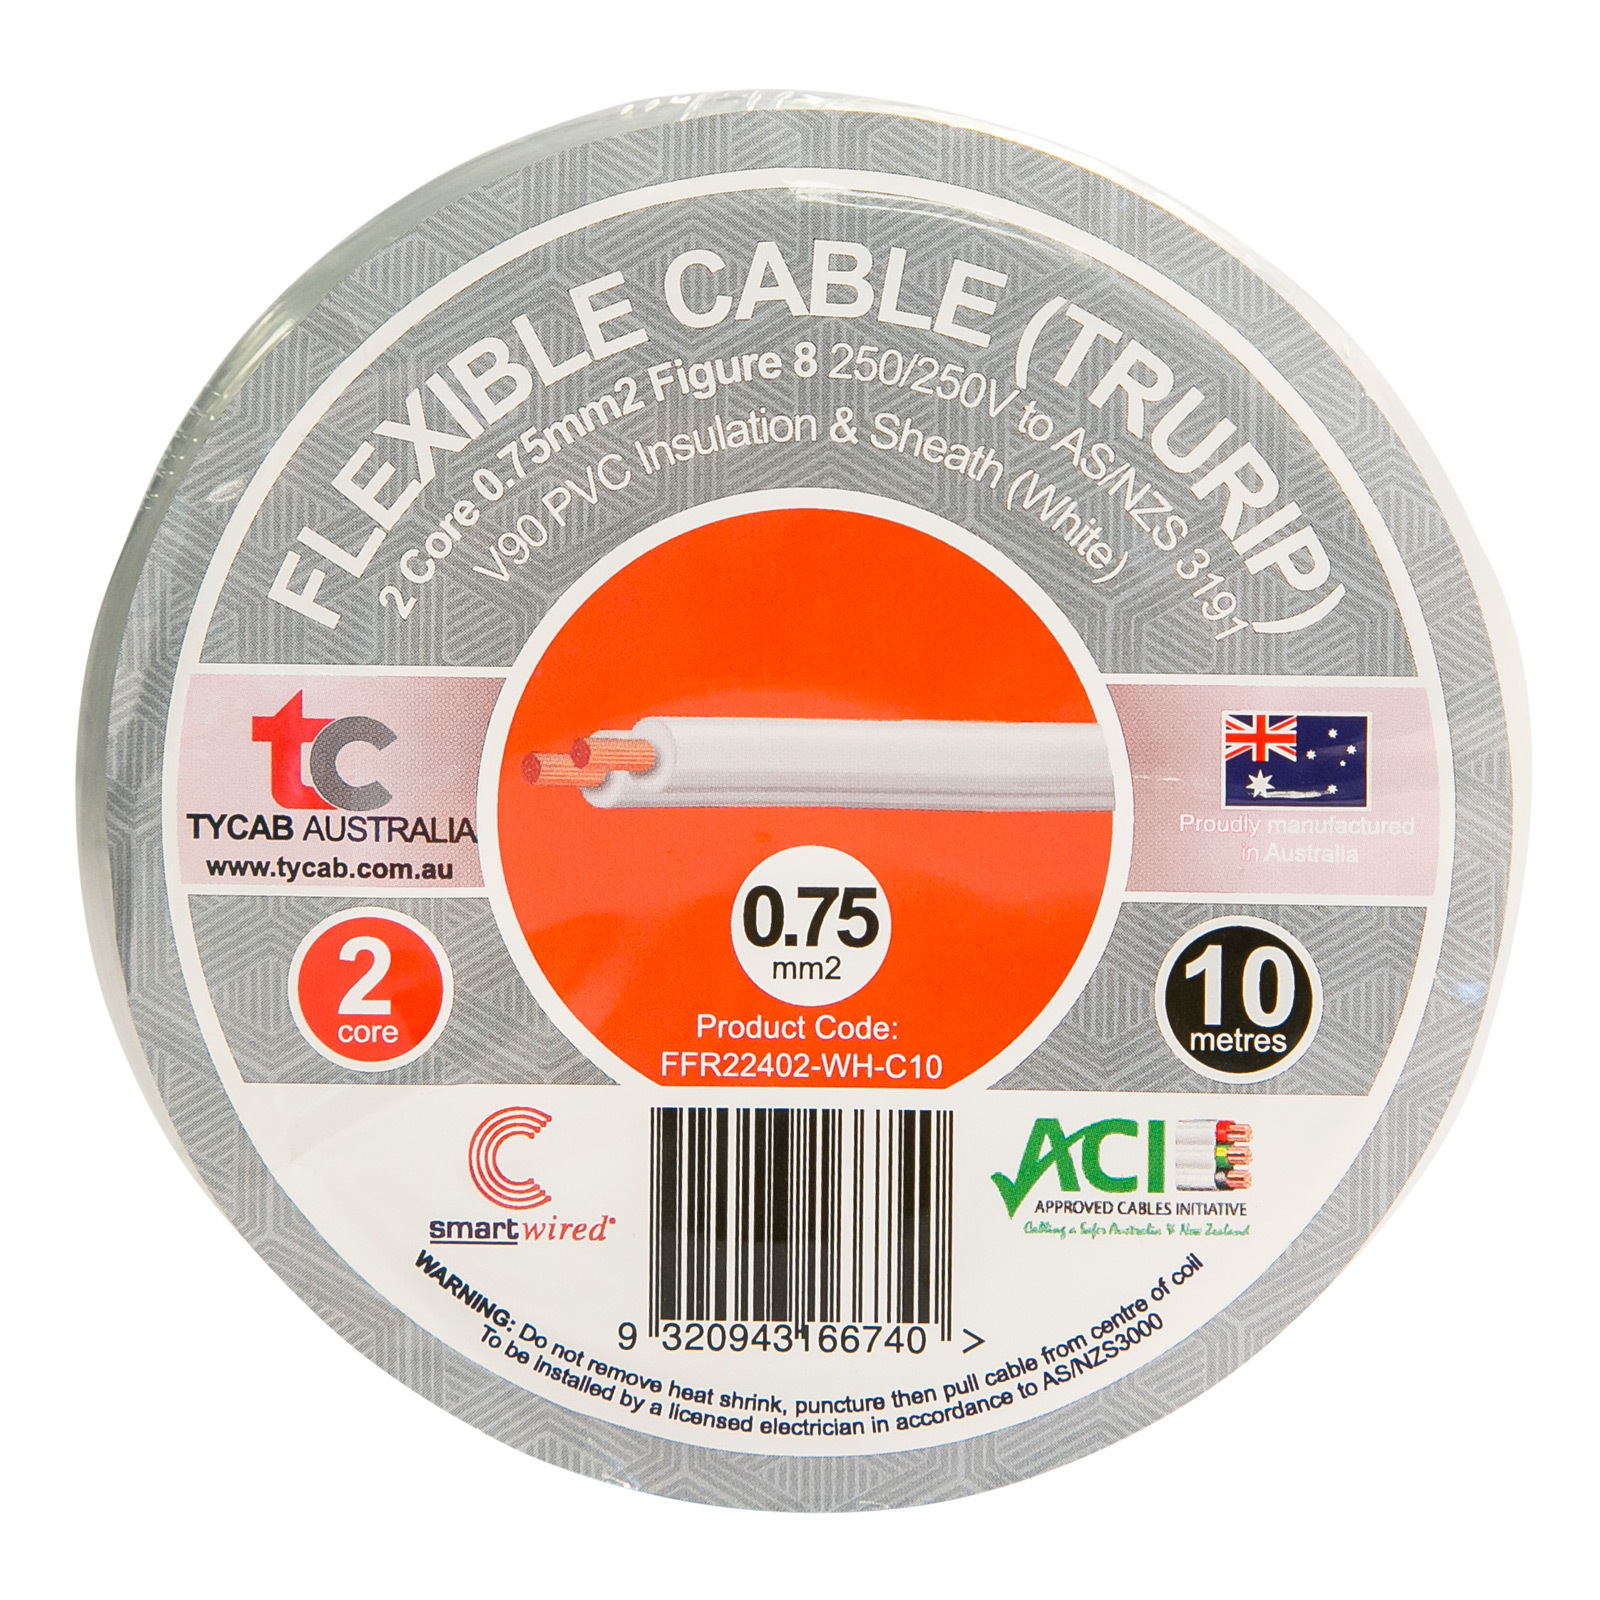 Tycab Cables 0.75mm² x 10m White 2 Core V90 Flexi Cable